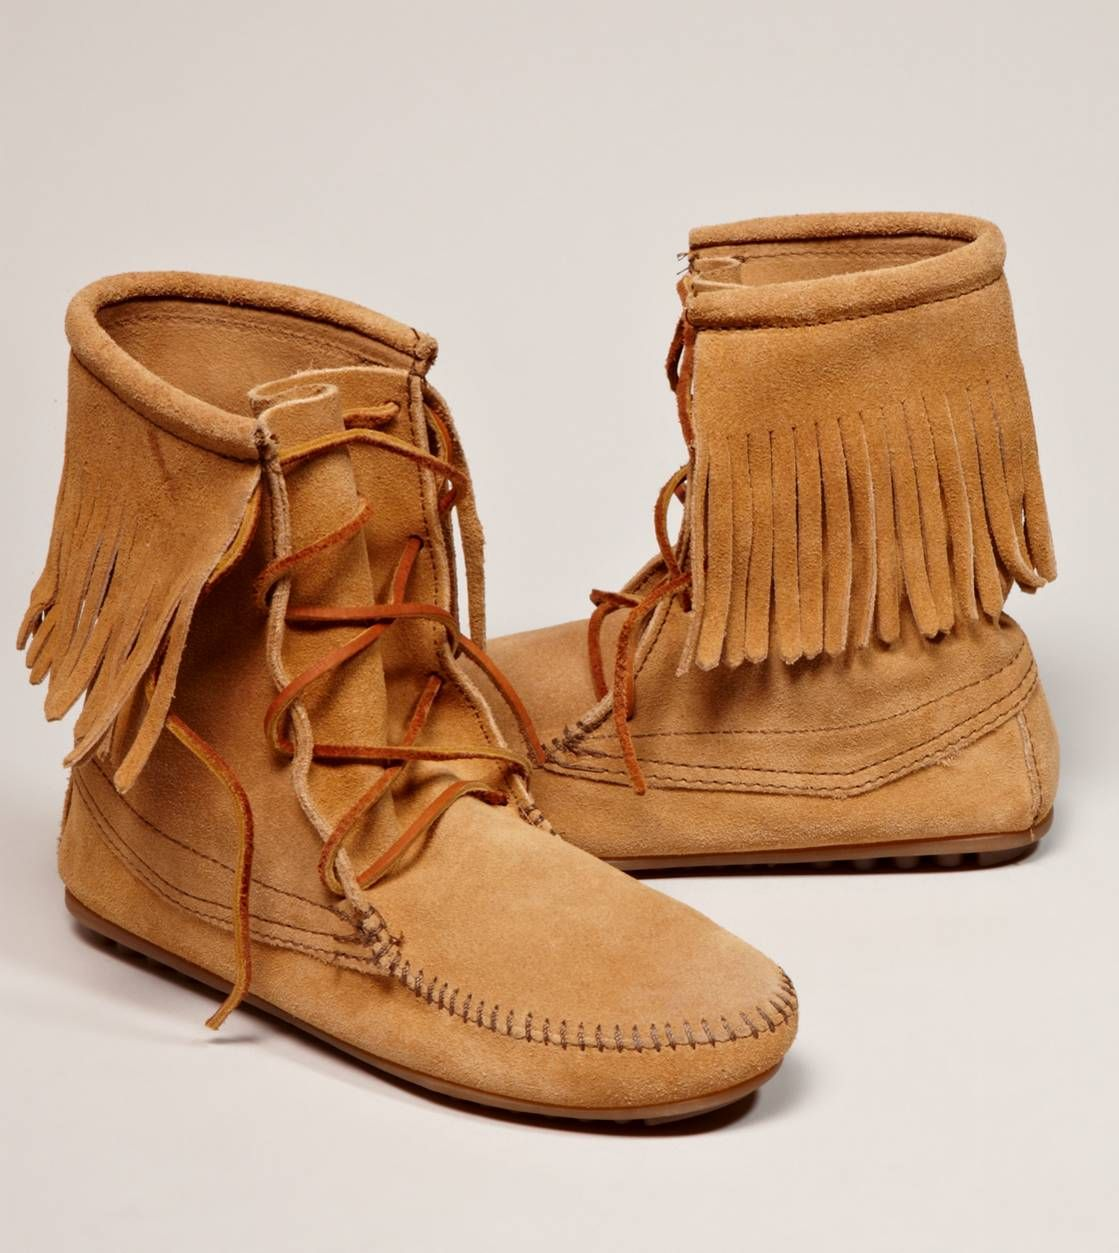 Minnetonka Tramper Ankle Hi Boot American Eagle Outfitters Boots Shoes Moccasin Boots